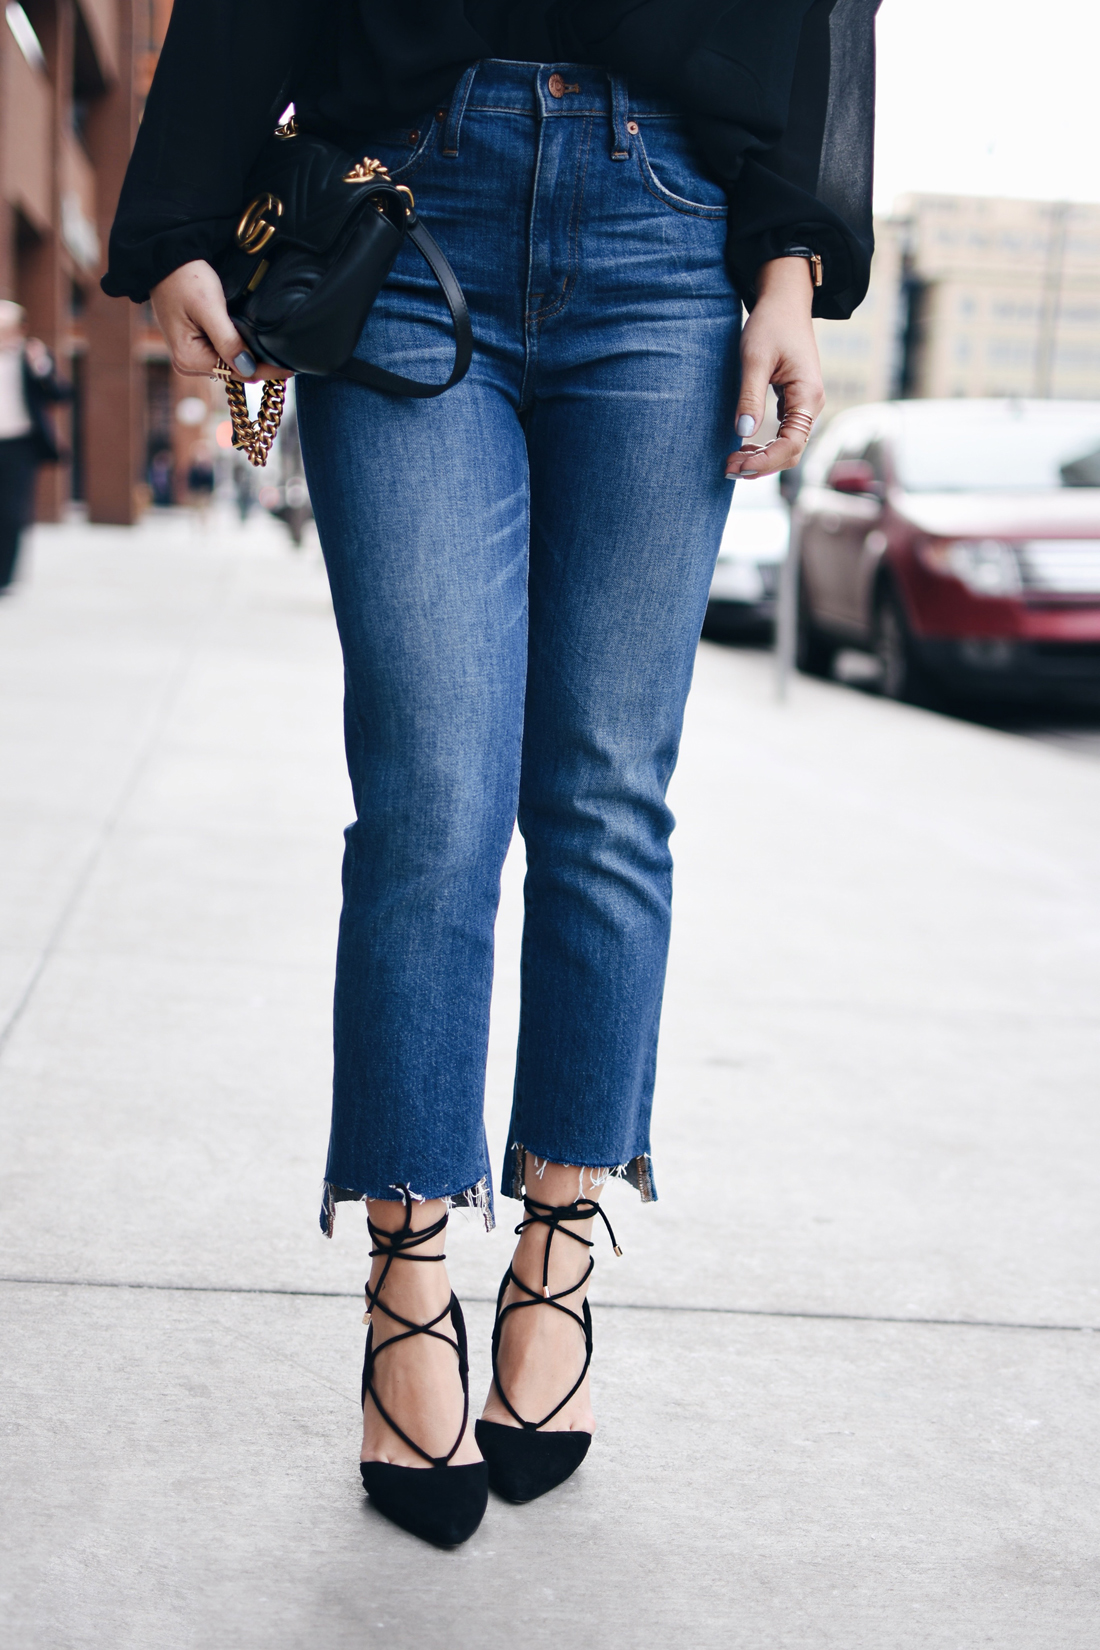 Madewell raw hem jeans and Aldo lace up pumps